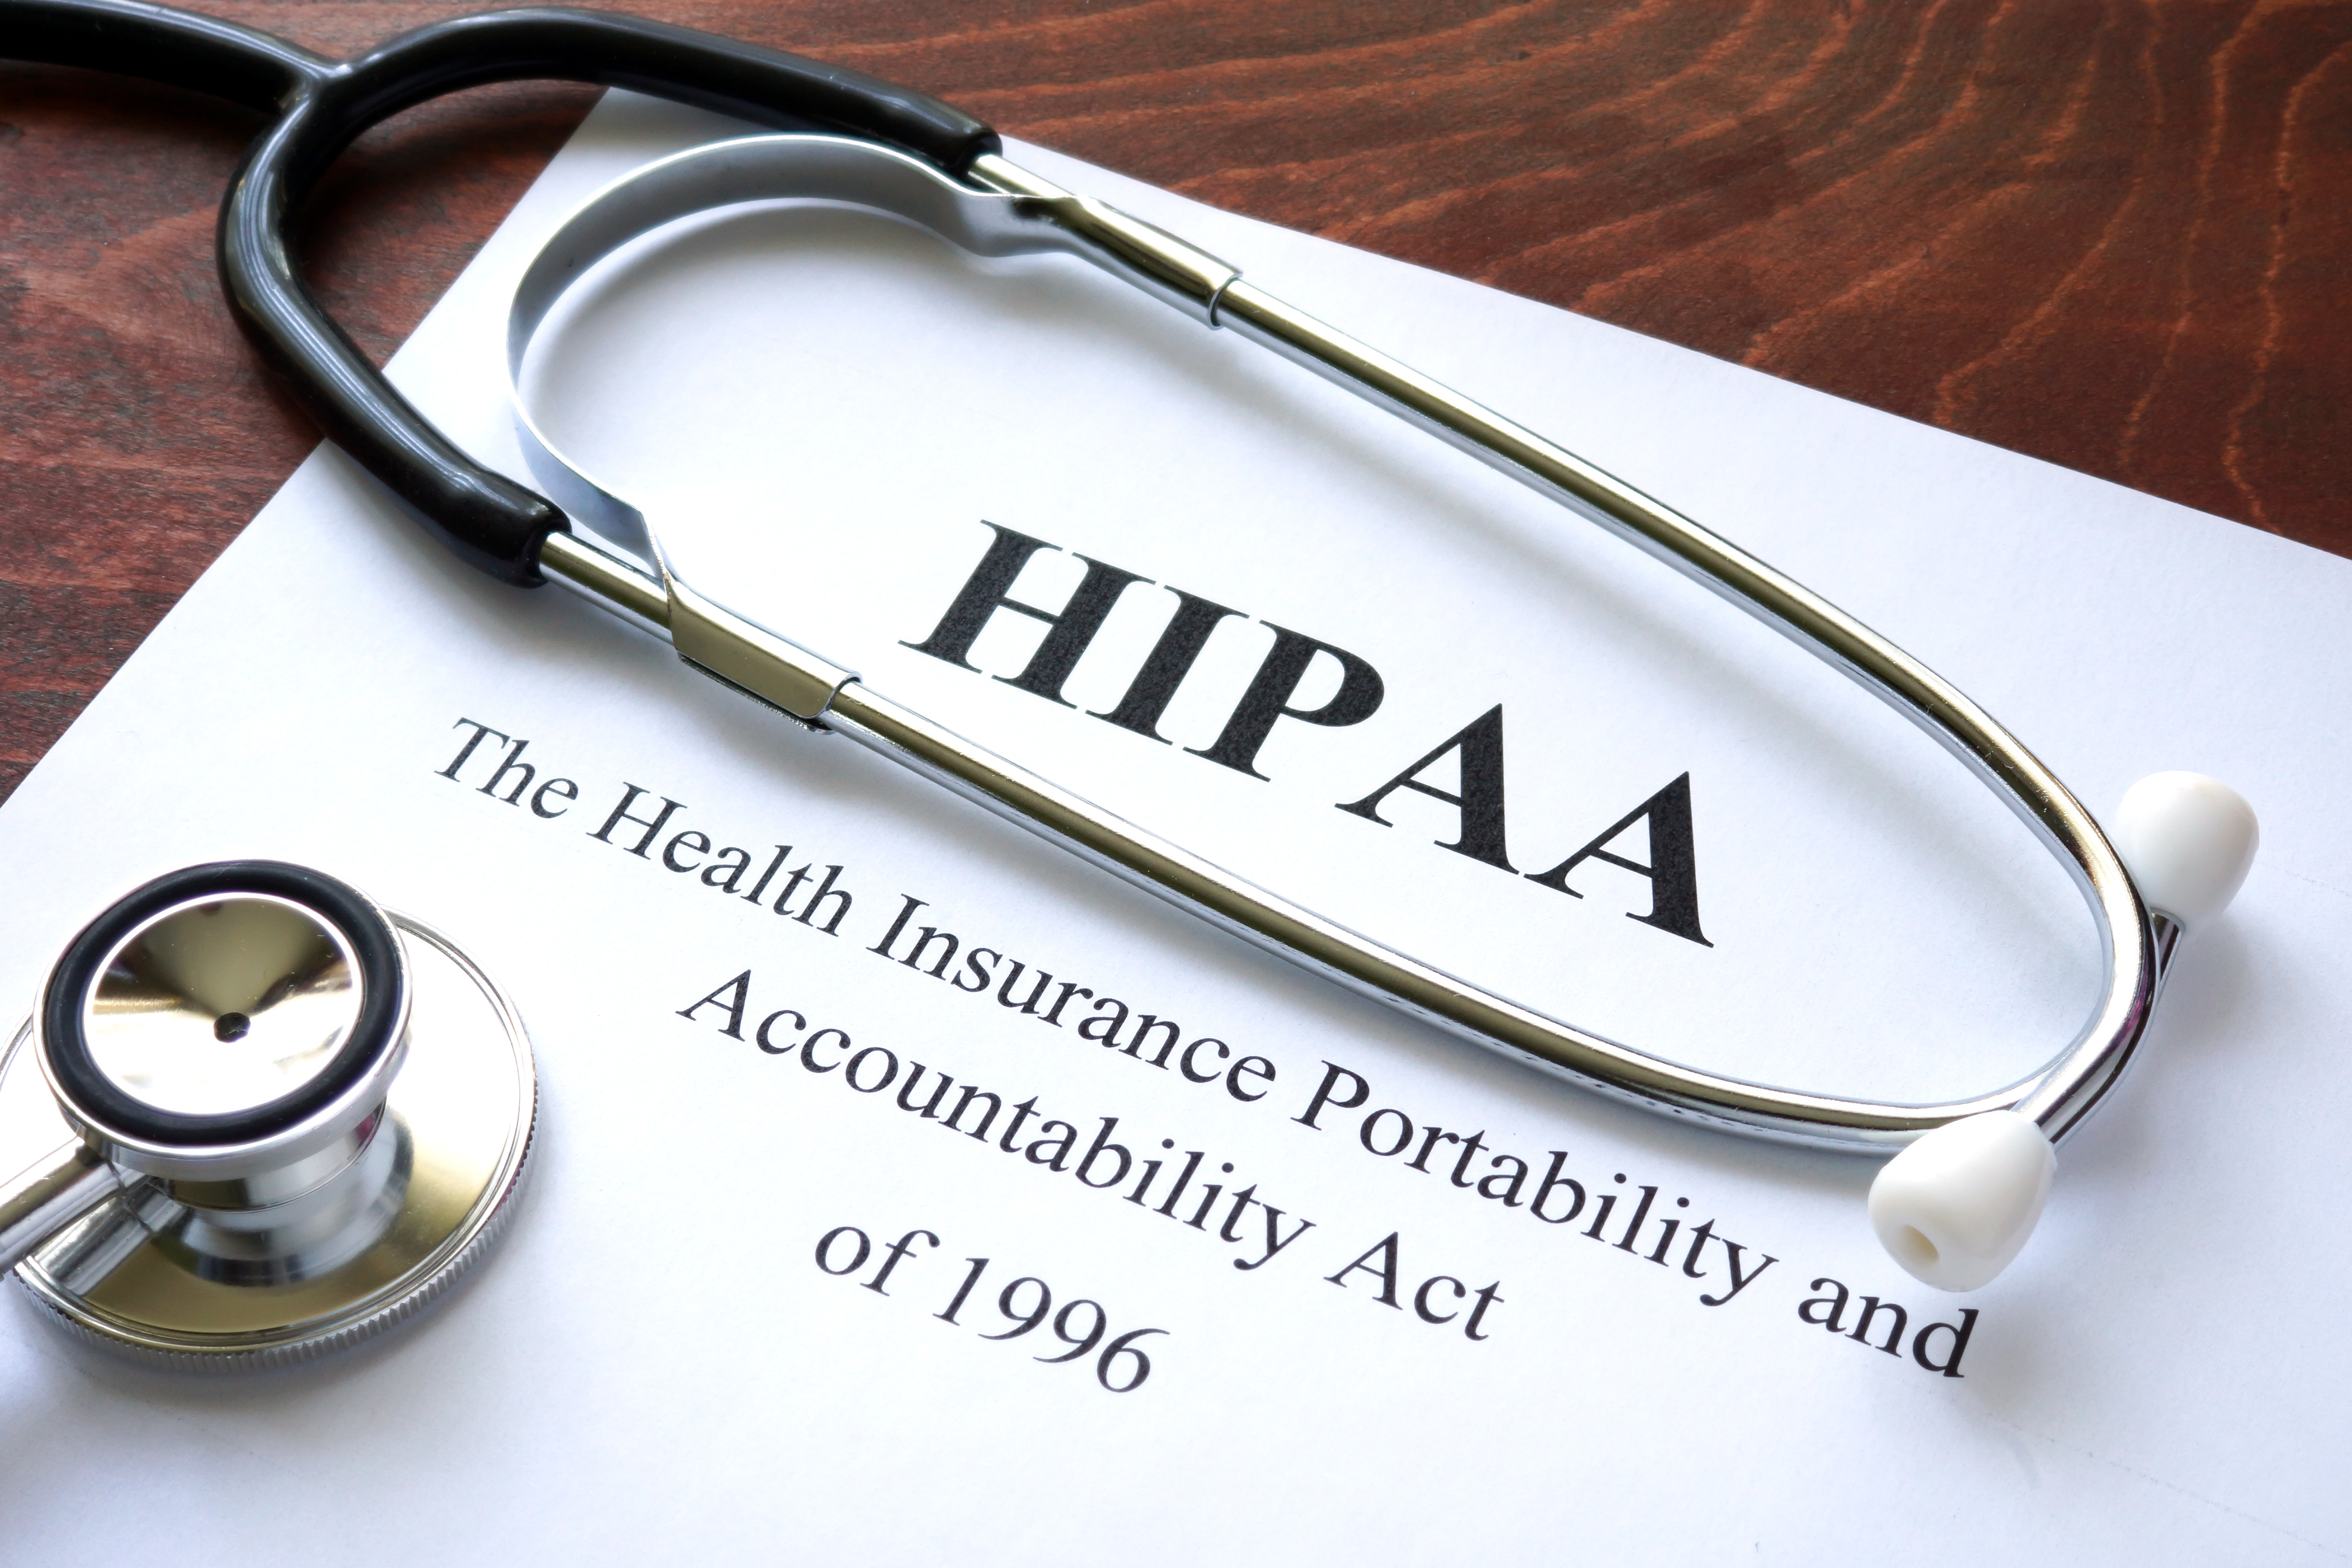 HIPAA, IT, and Compliance: Are You Up To Date?